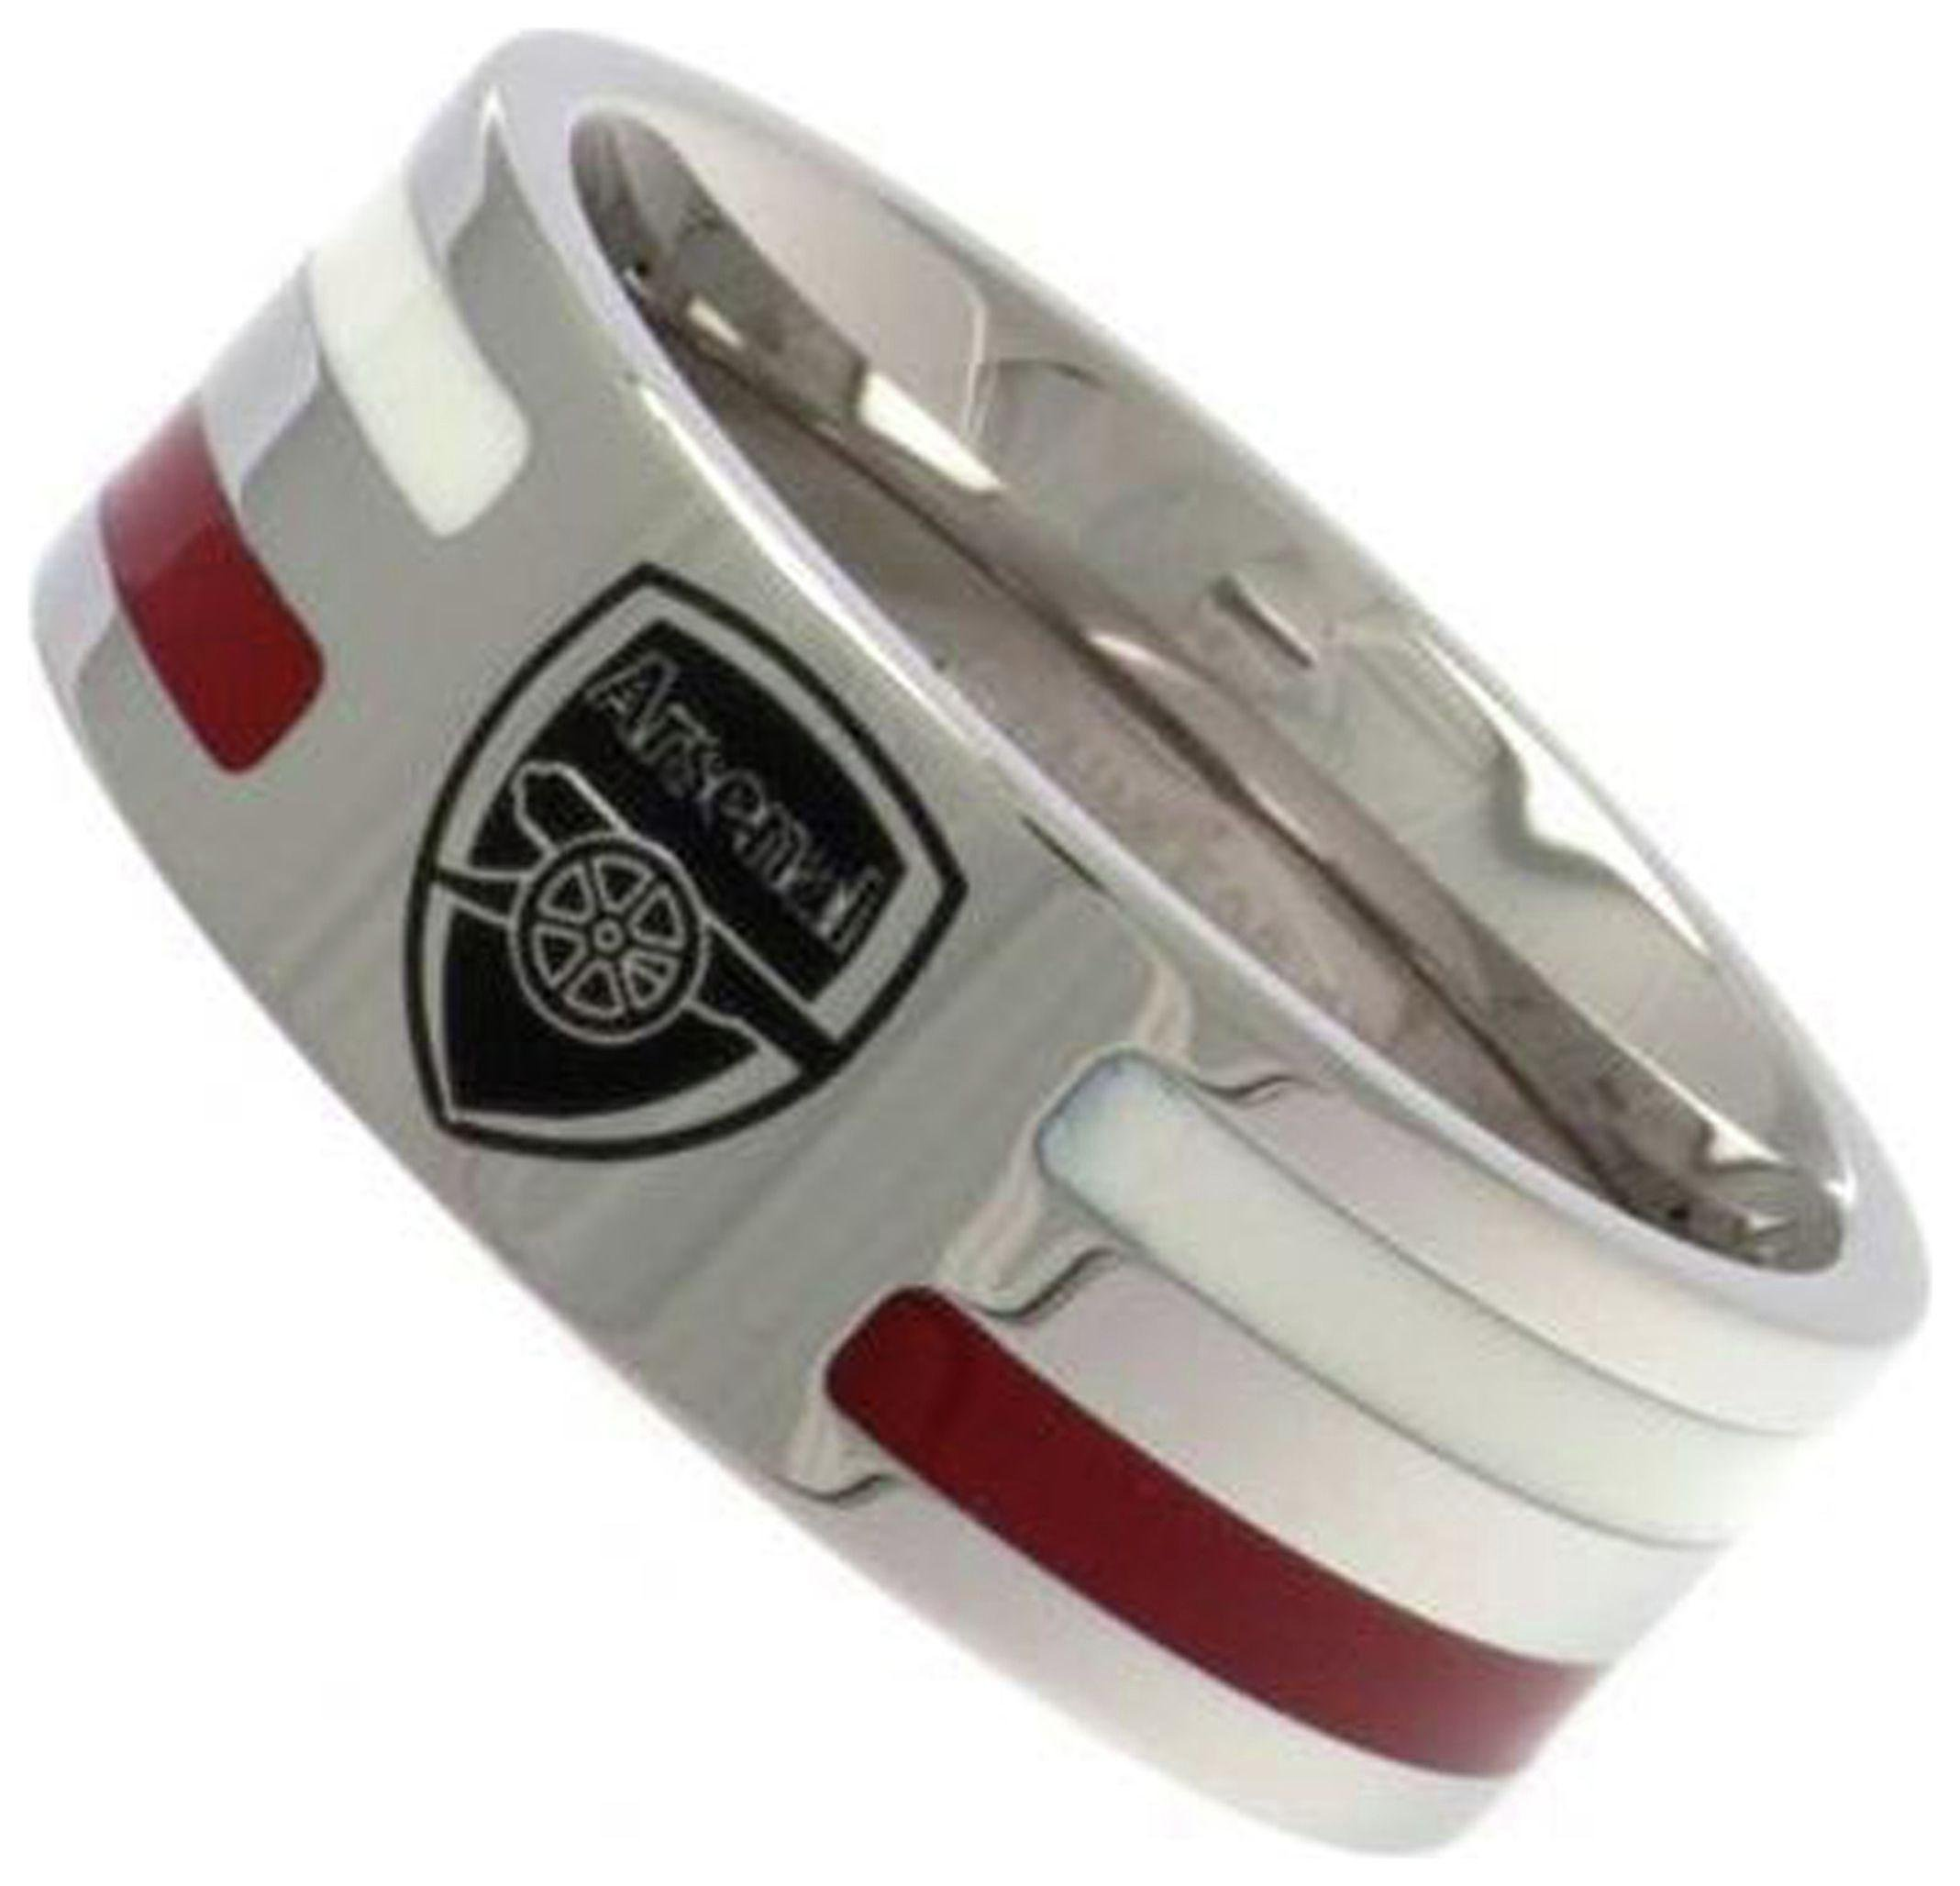 Image of Stainless Steel Arsenal Striped Ring - Size U